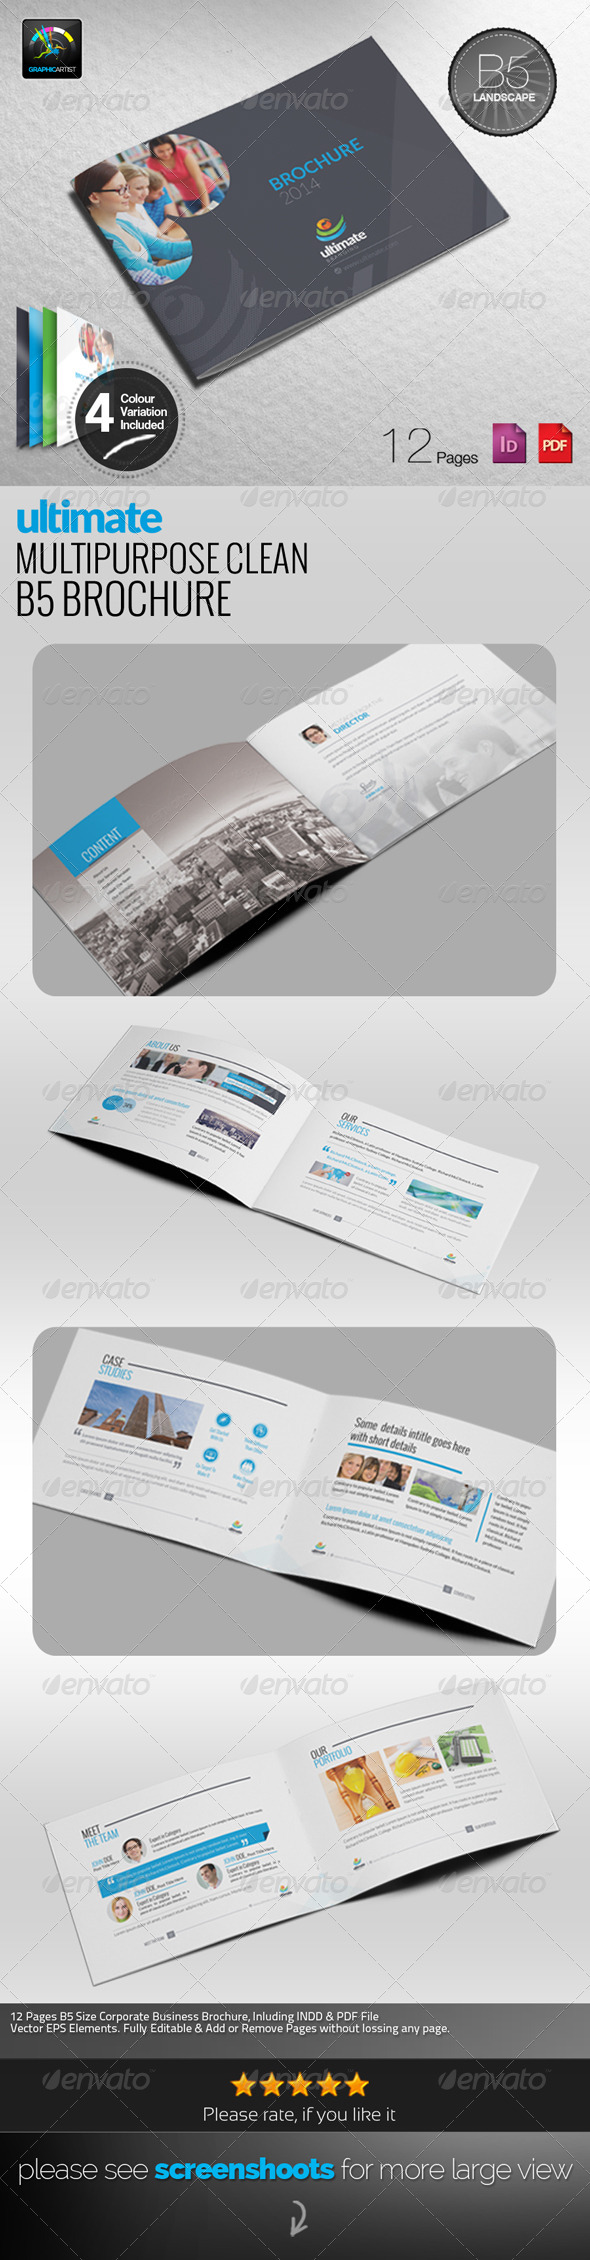 Ultimate Multipurpose B5 Brochure